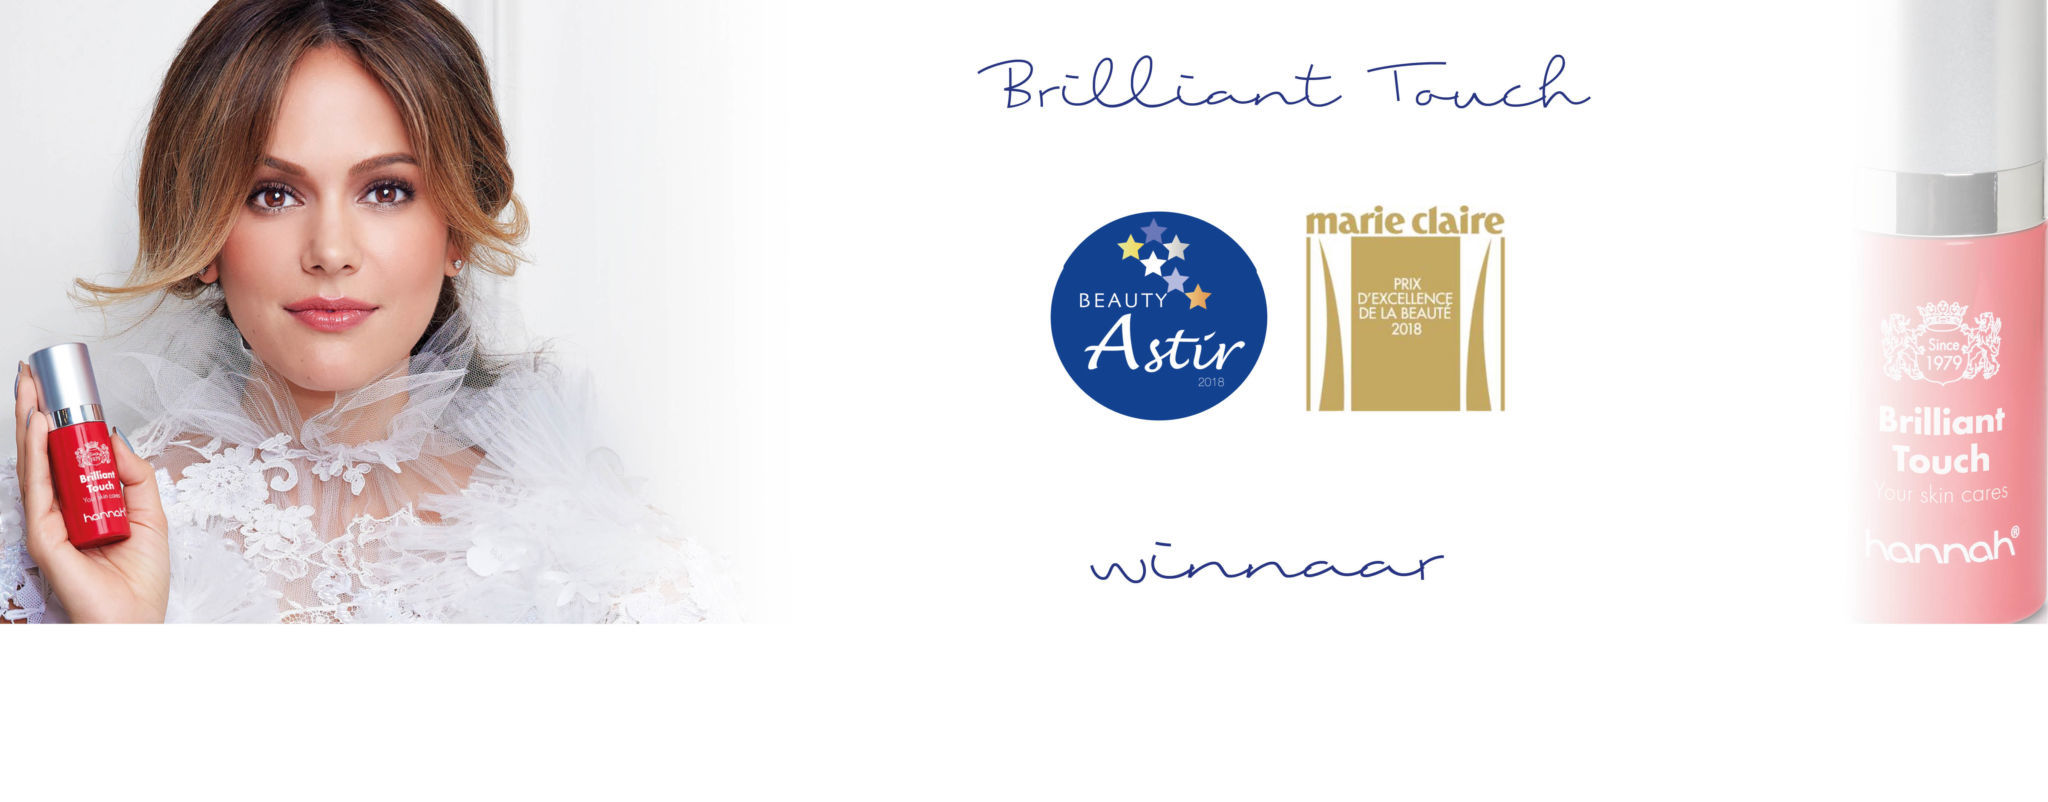 Brilliant Touch Brilliant Touch Wint Astir Award en Marie Claire Prix D' Excellence De La Beauté